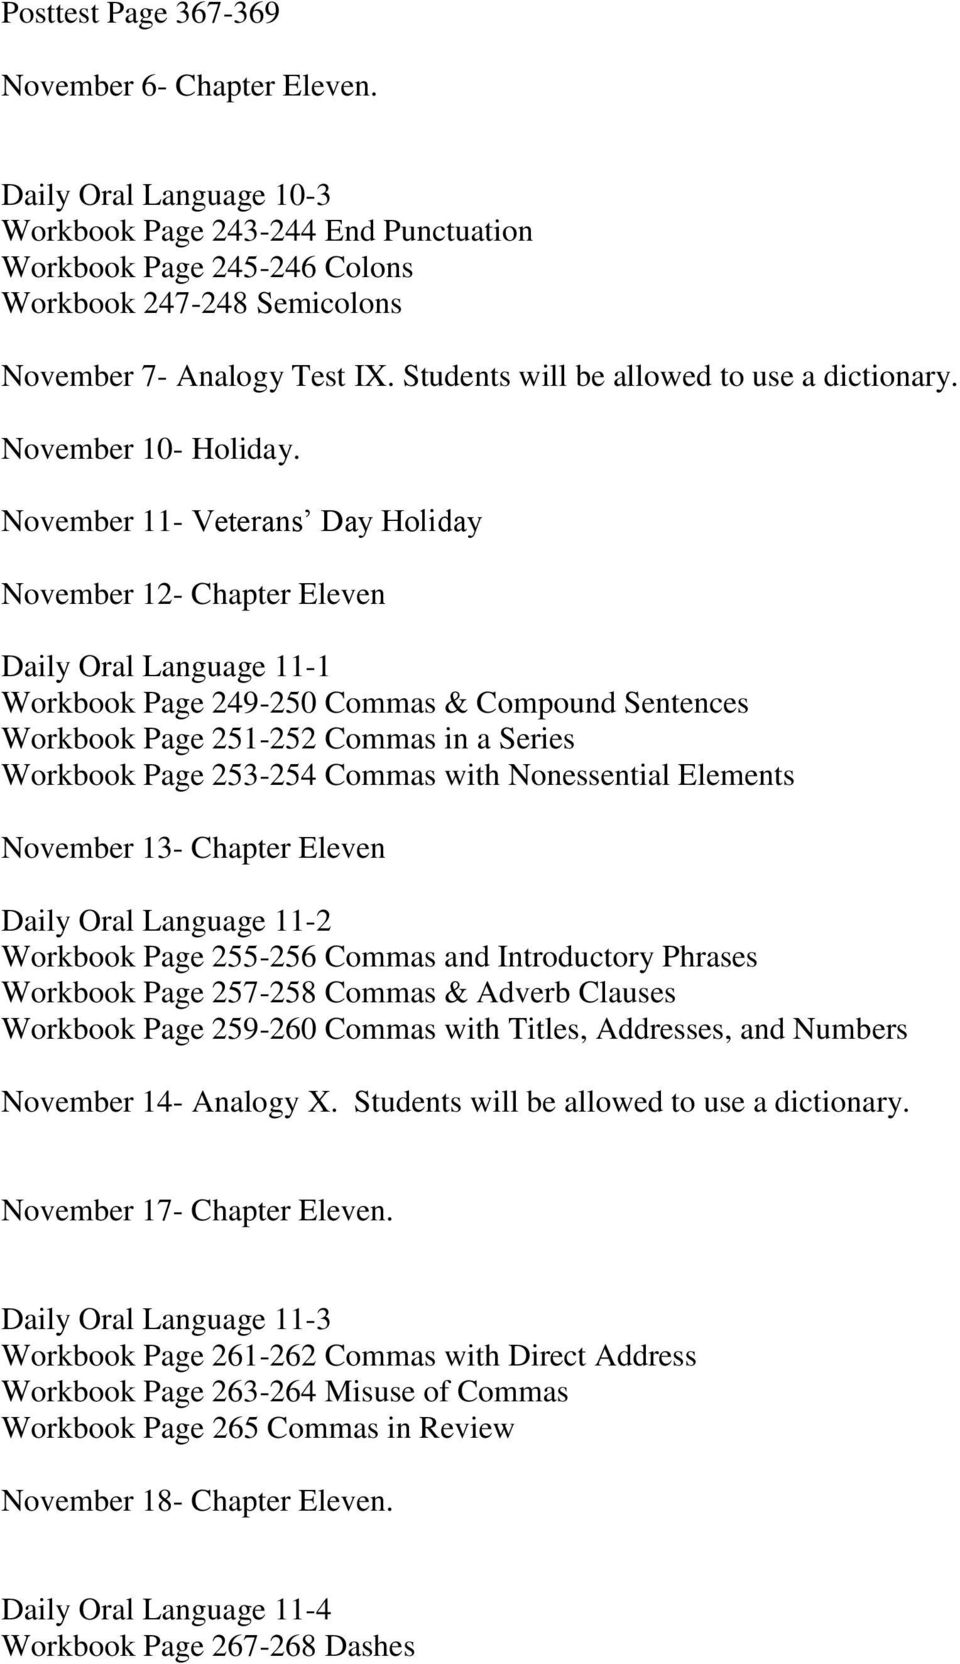 November 11- Veterans Day Holiday November 12- Chapter Eleven Daily Oral Language 11-1 Workbook Page 249-250 Commas & Compound Sentences Workbook Page 251-252 Commas in a Series Workbook Page 253-254